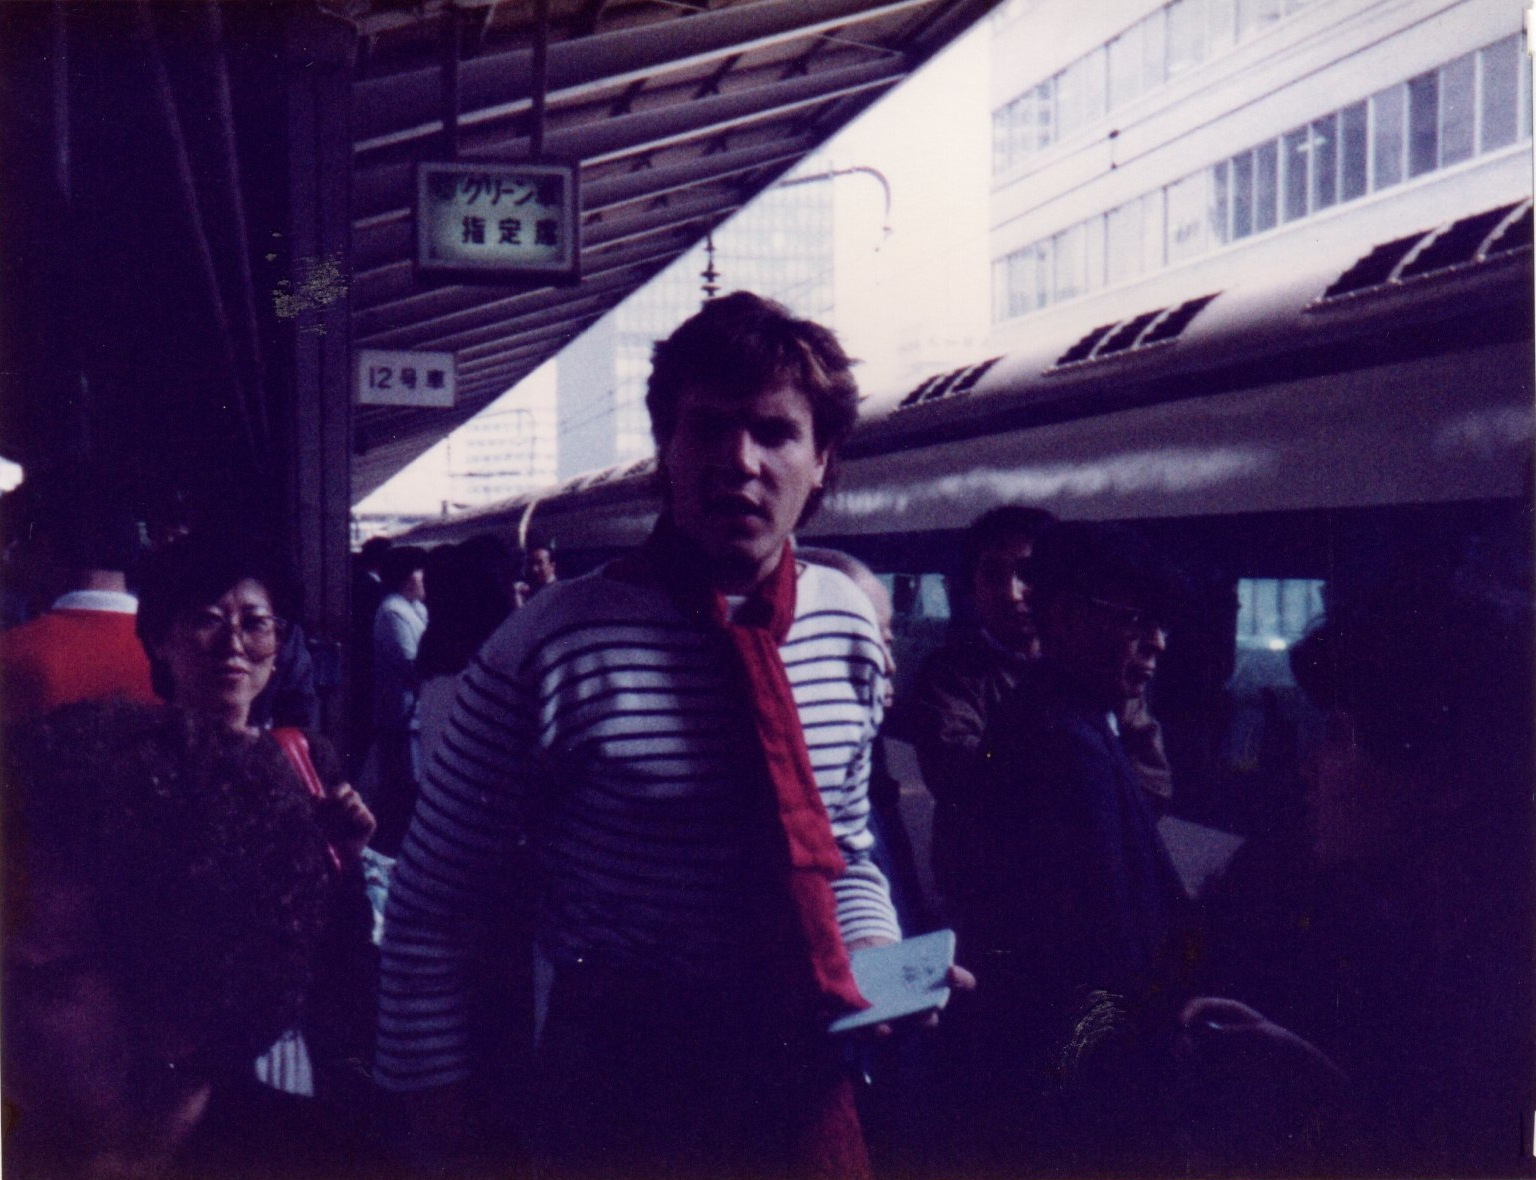 simon in japan 82